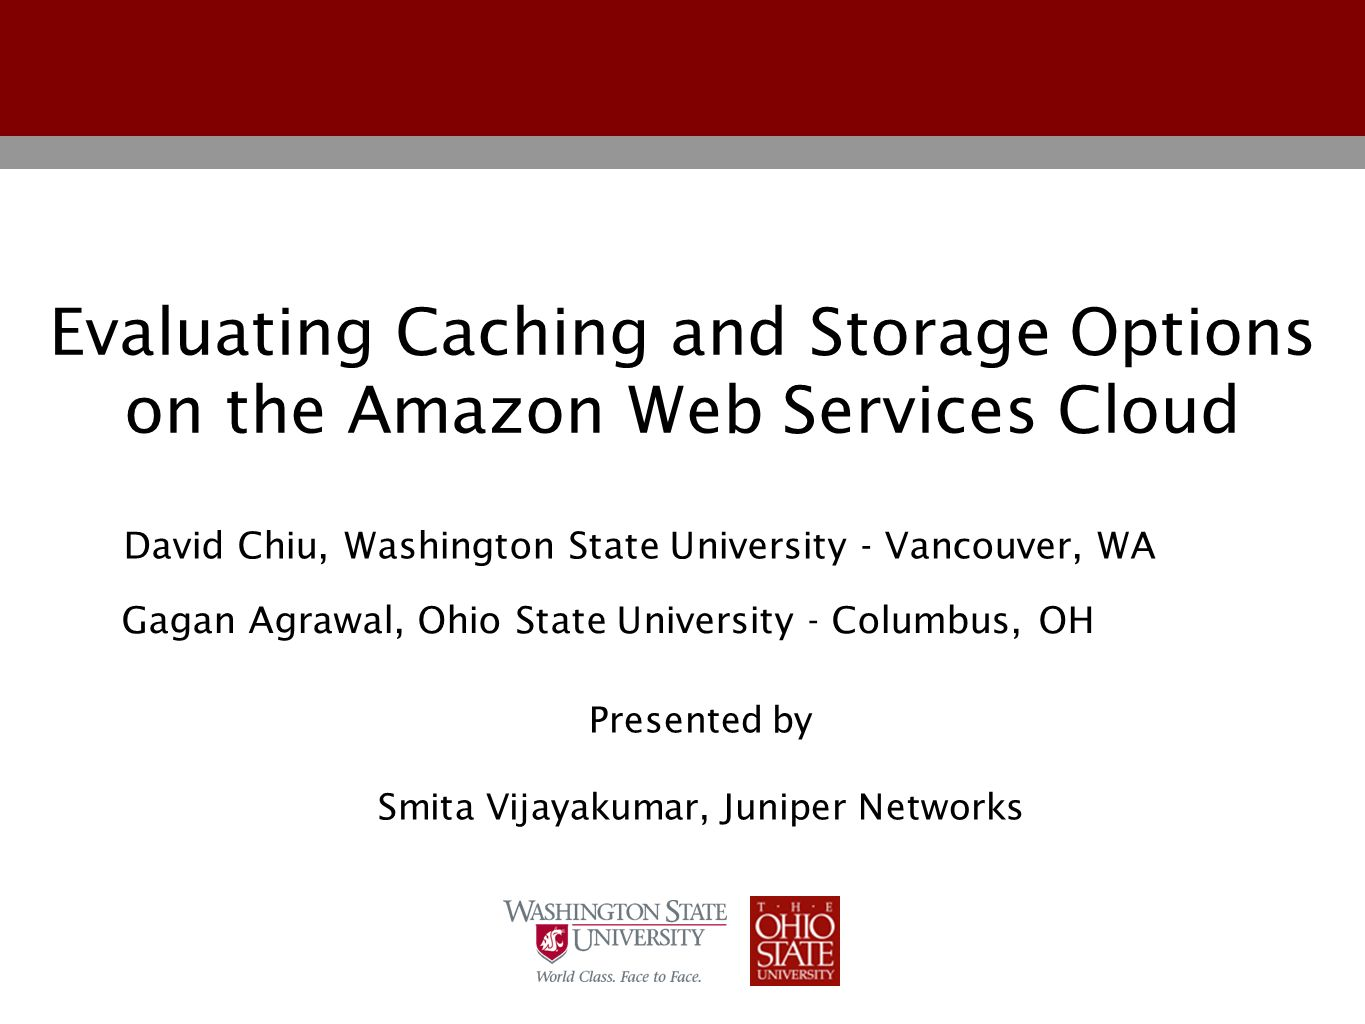 Evaluating Caching and Storage Options on the Amazon Web Services Cloud Gagan Agrawal, Ohio State University - Columbus, OH David Chiu, Washington State University - Vancouver, WA Presented by Smita Vijayakumar, Juniper Networks